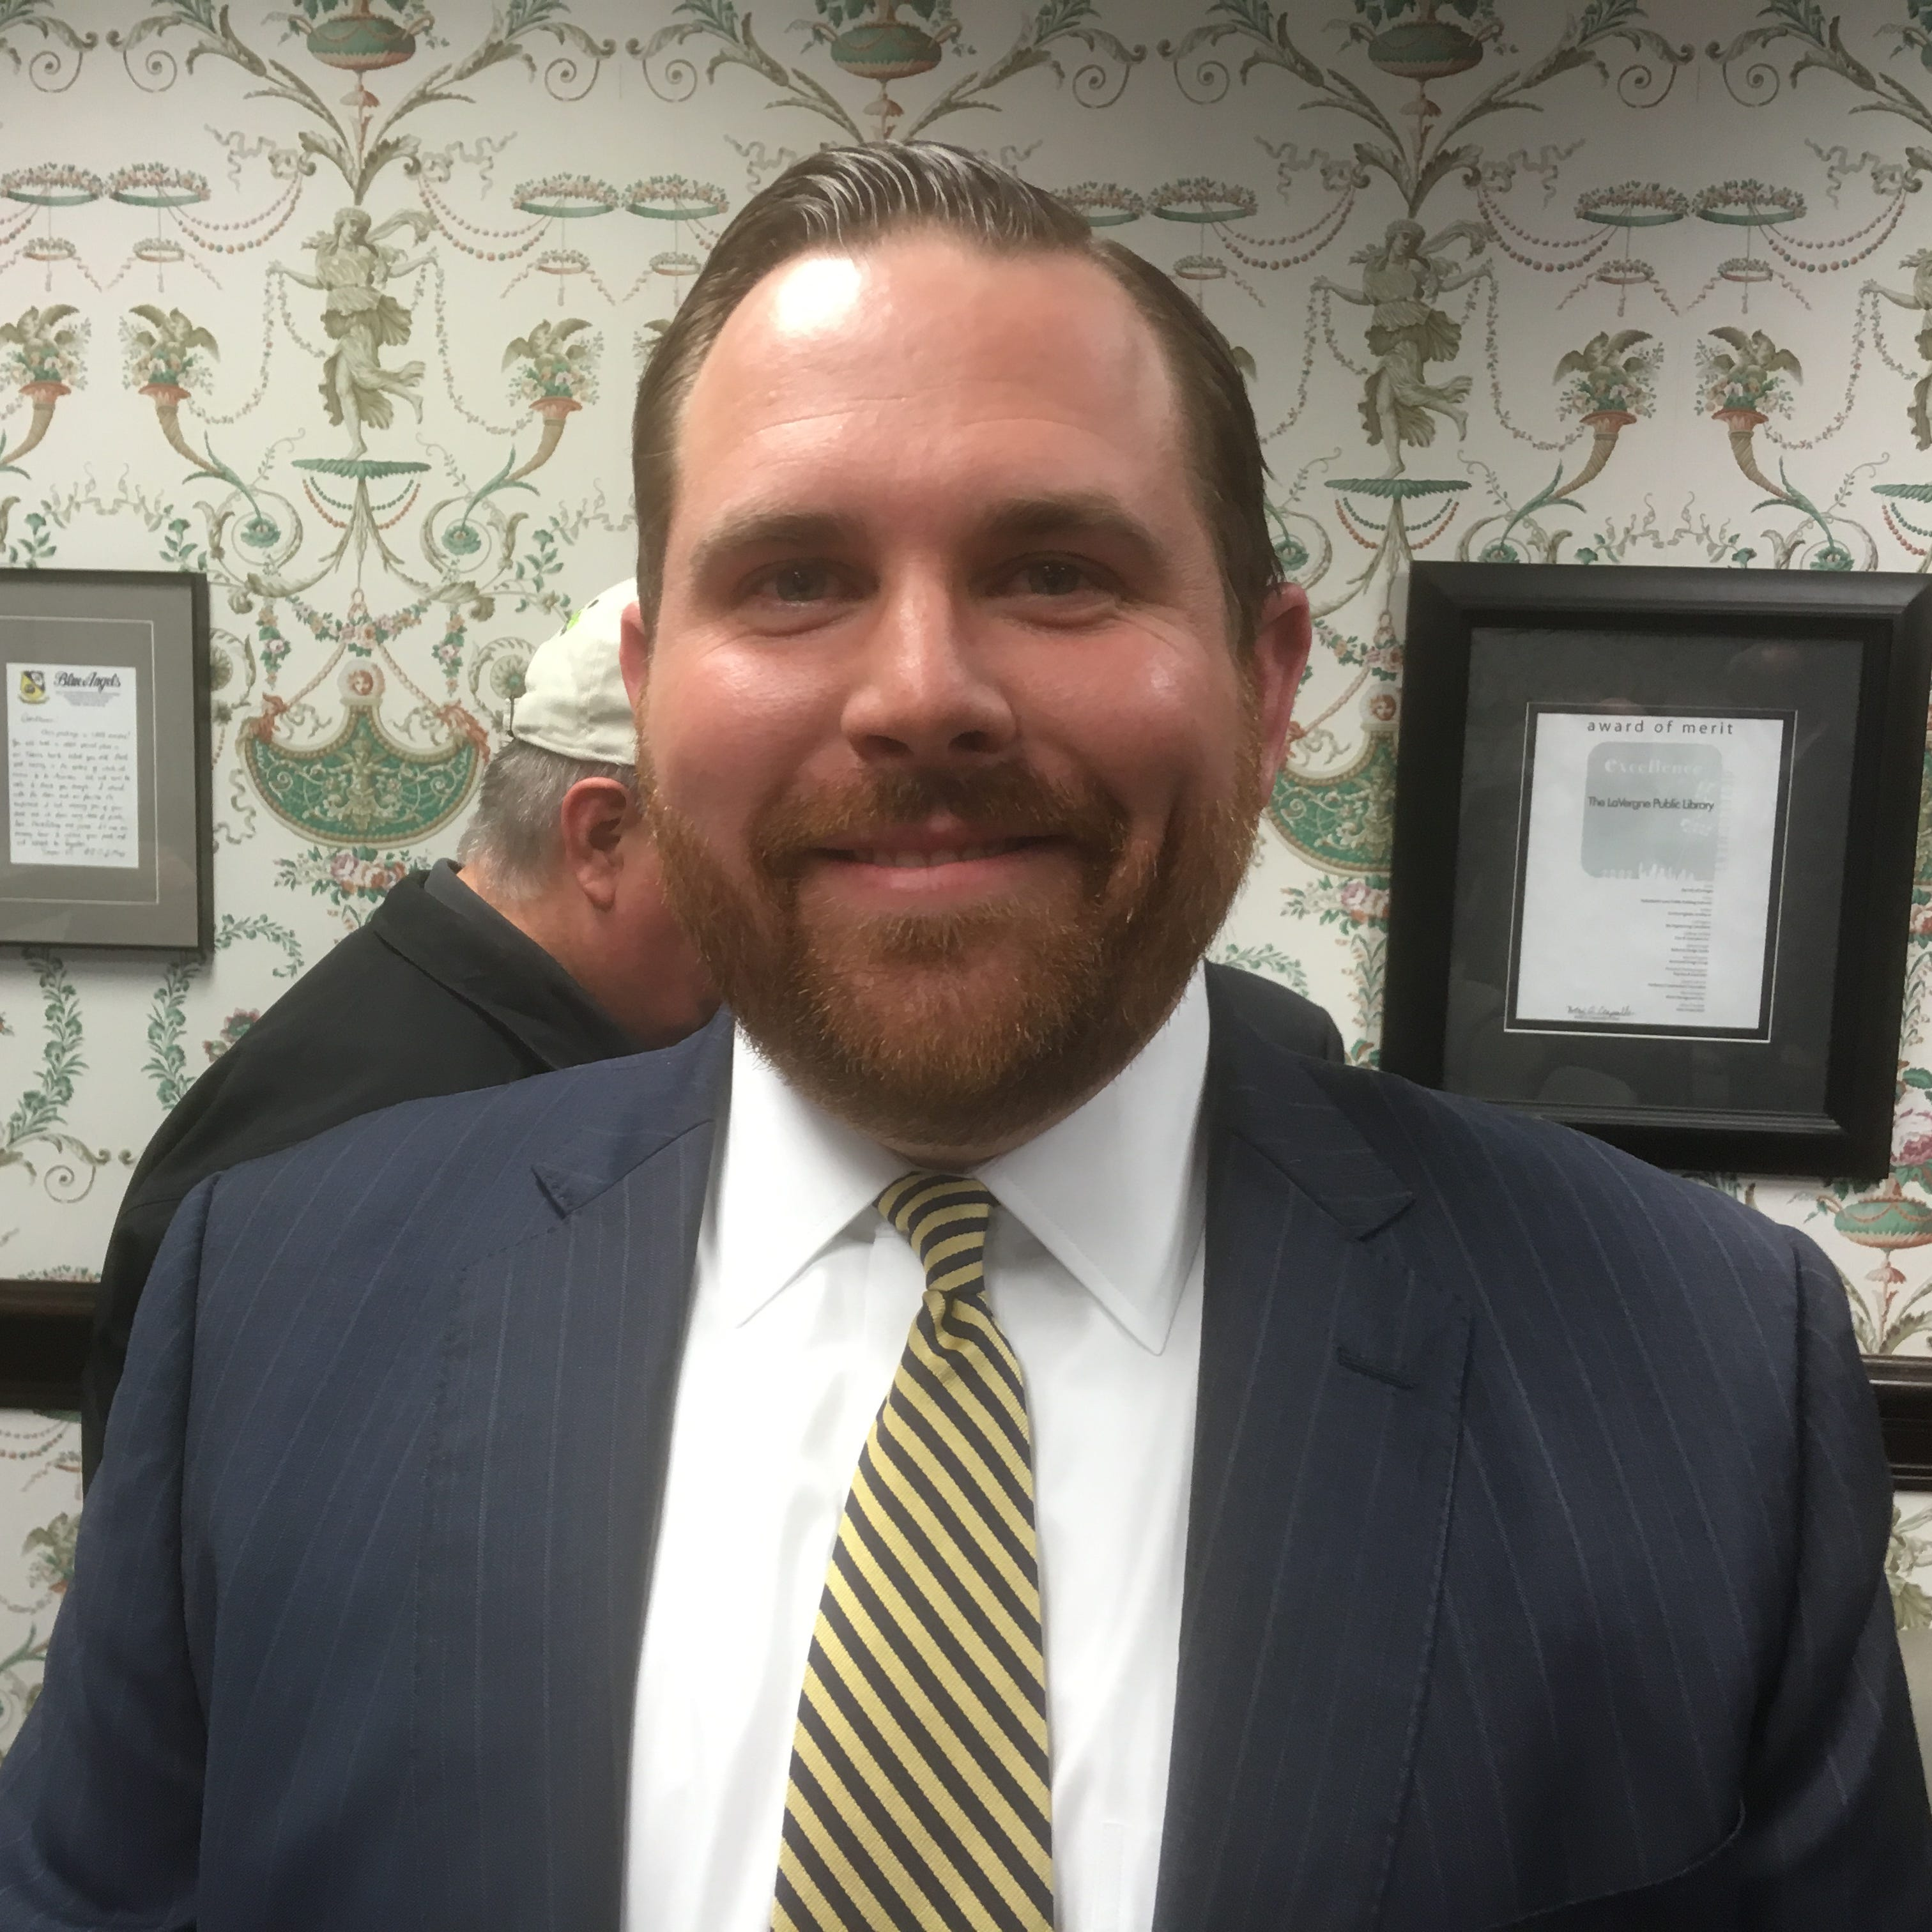 Rutherford County Commission votes to hire Nick Christiansen as county attorney